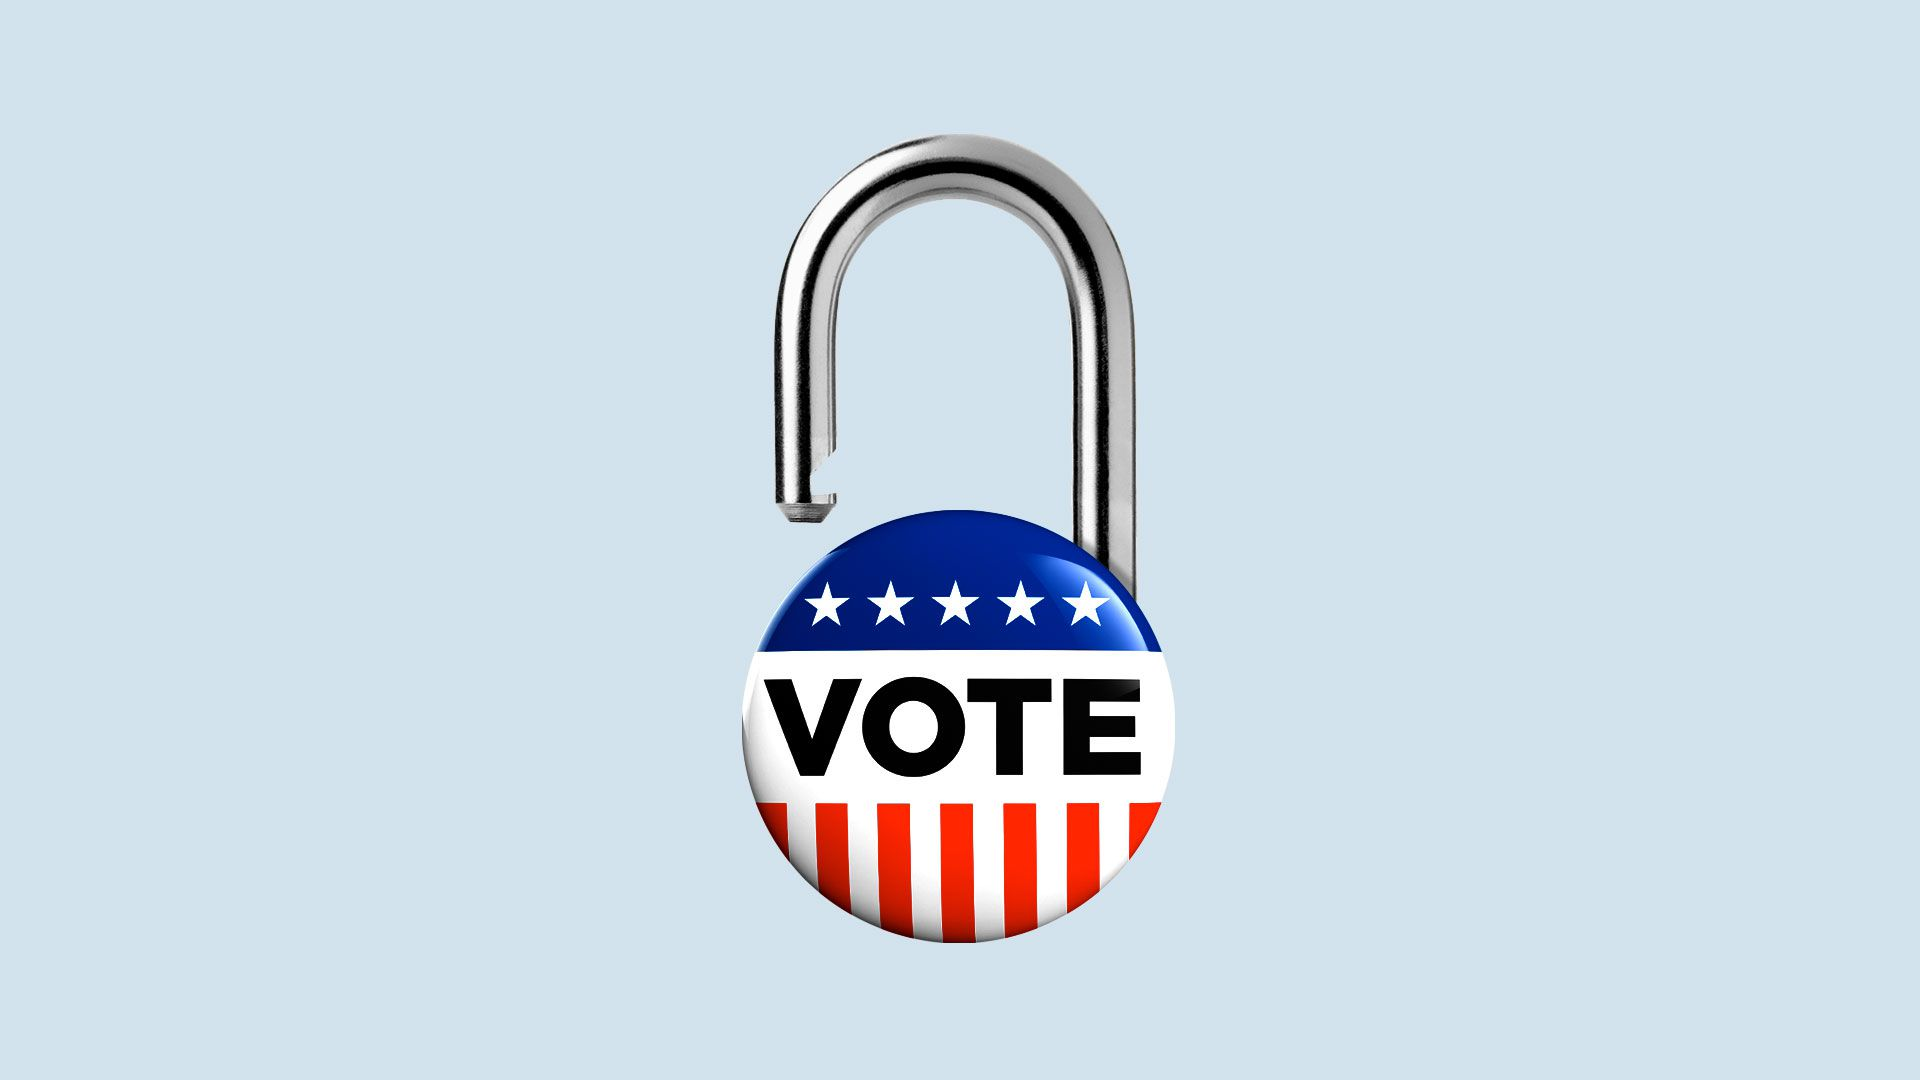 Illustration of a campaign vote button with an opened padlock shackle on the top.